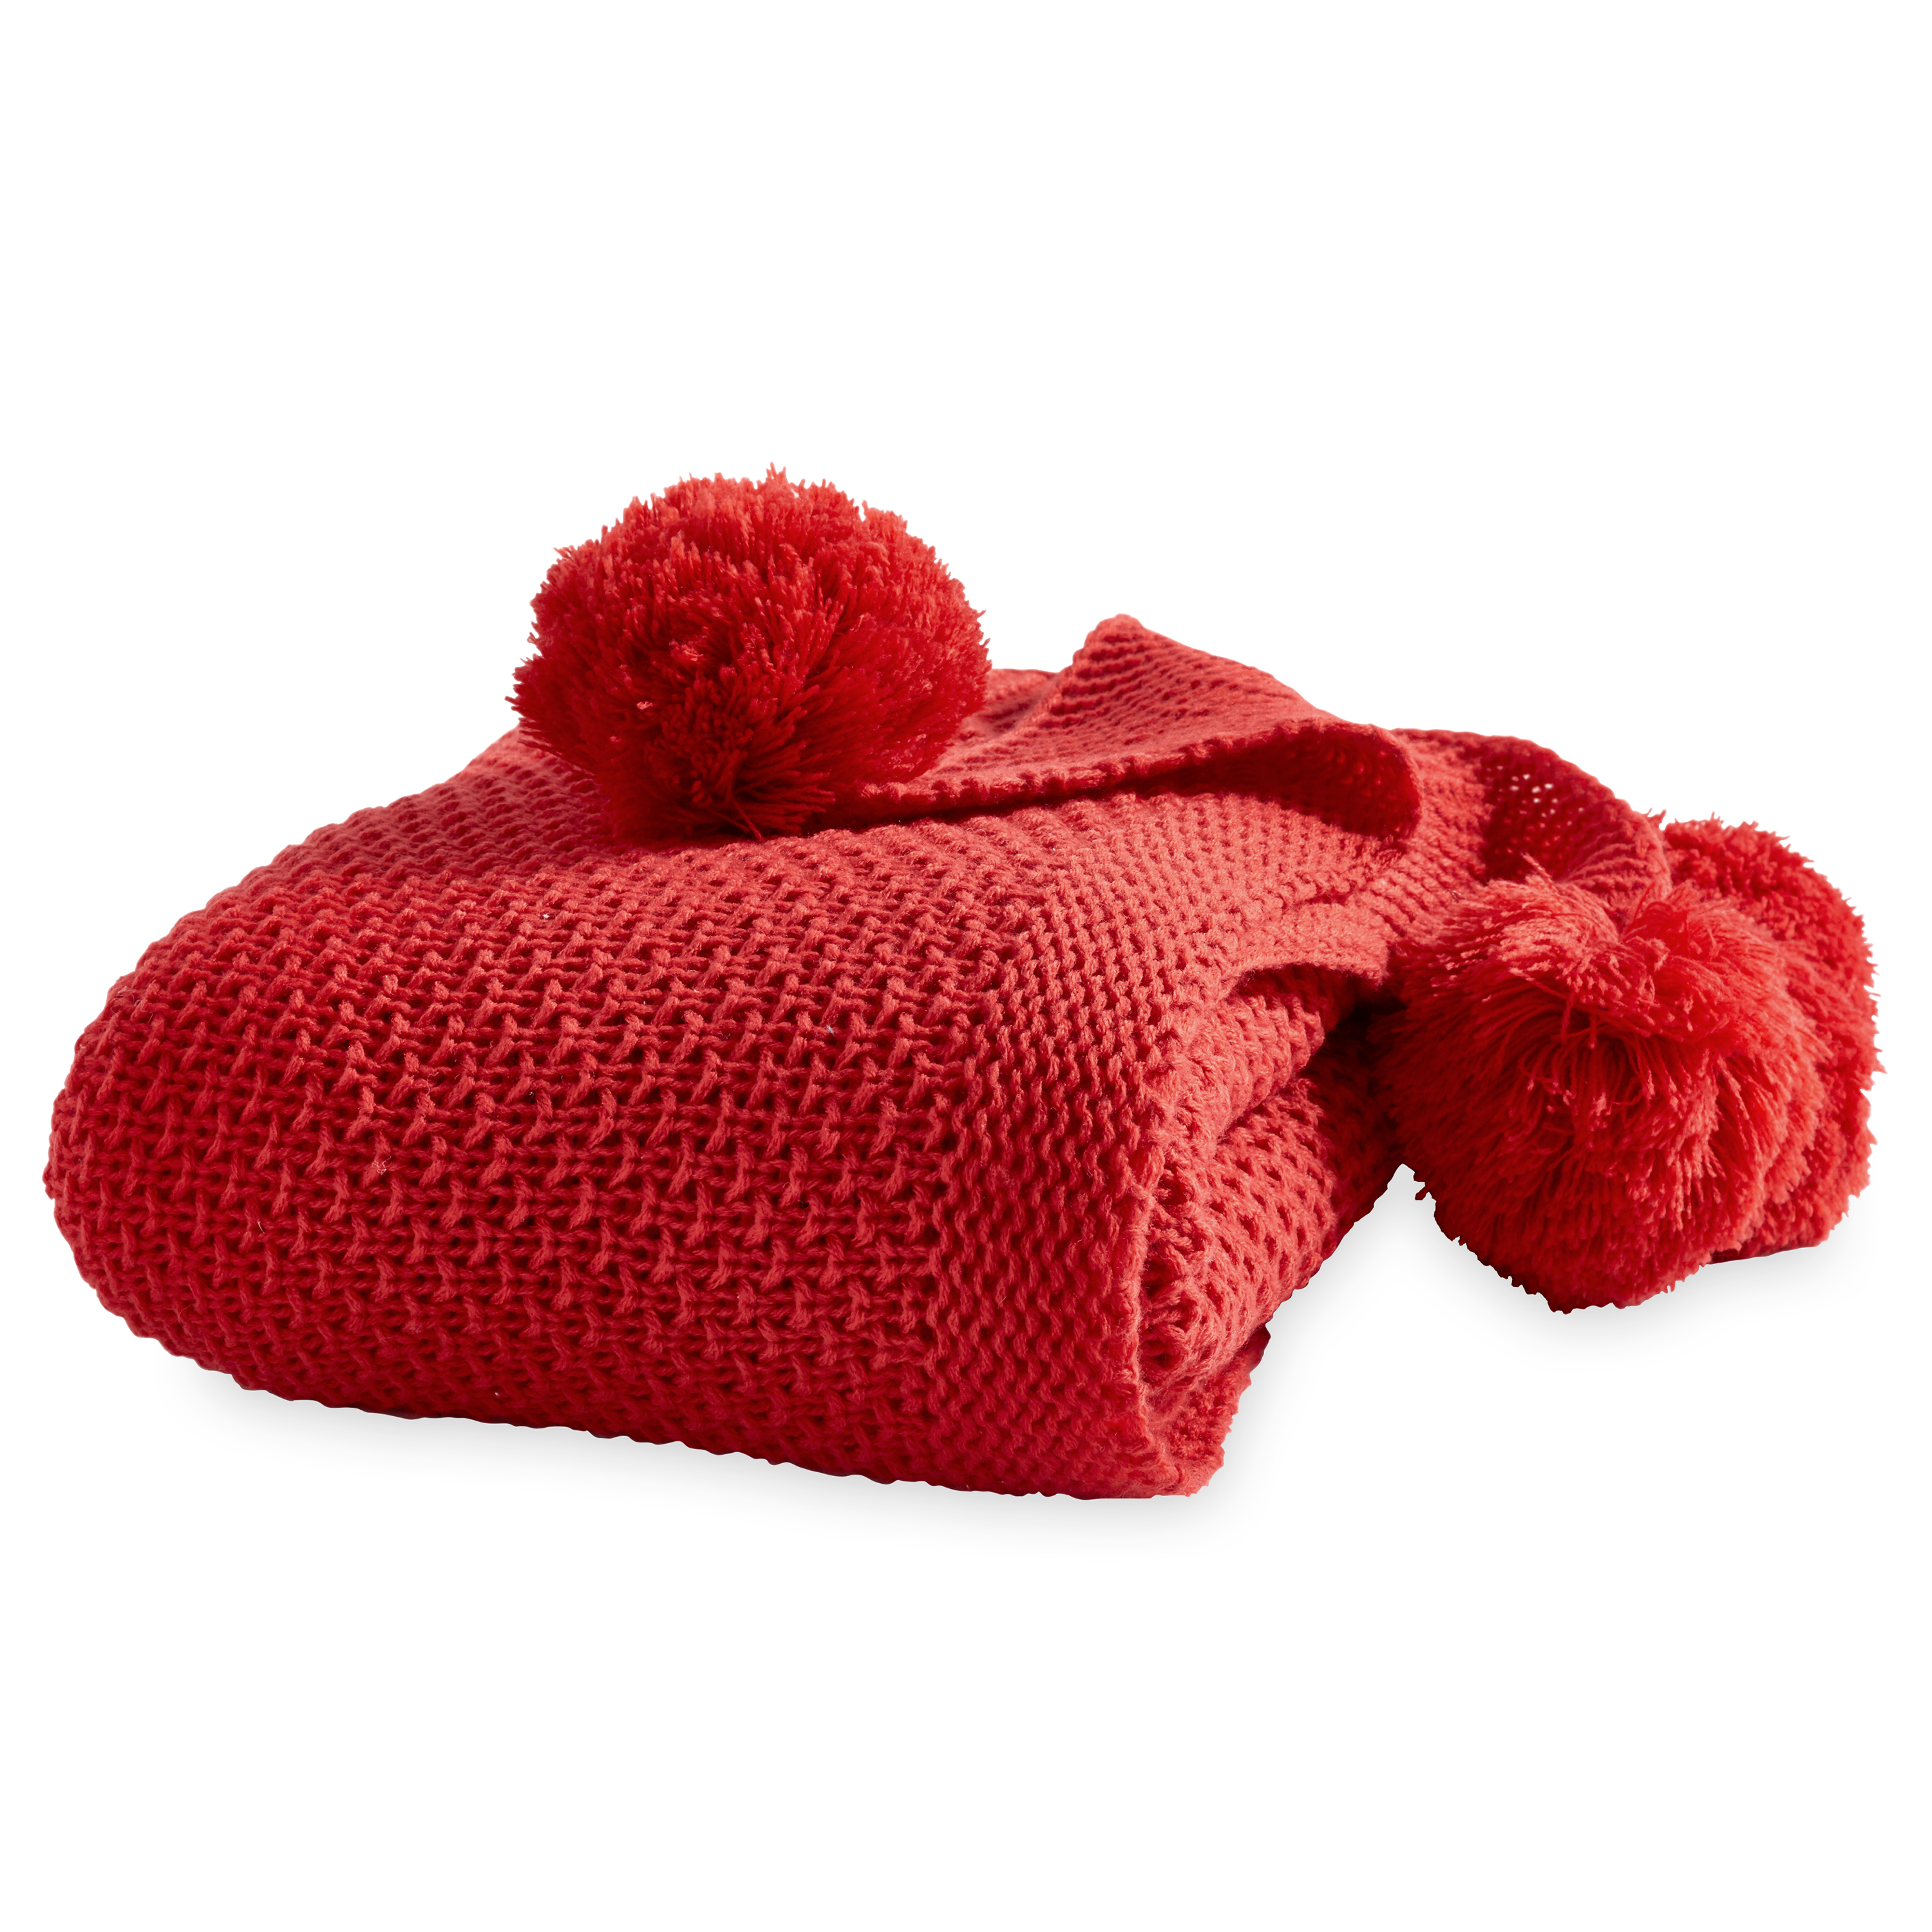 Better Homes and Gardens Knit Pom-Pom Throw Blanket